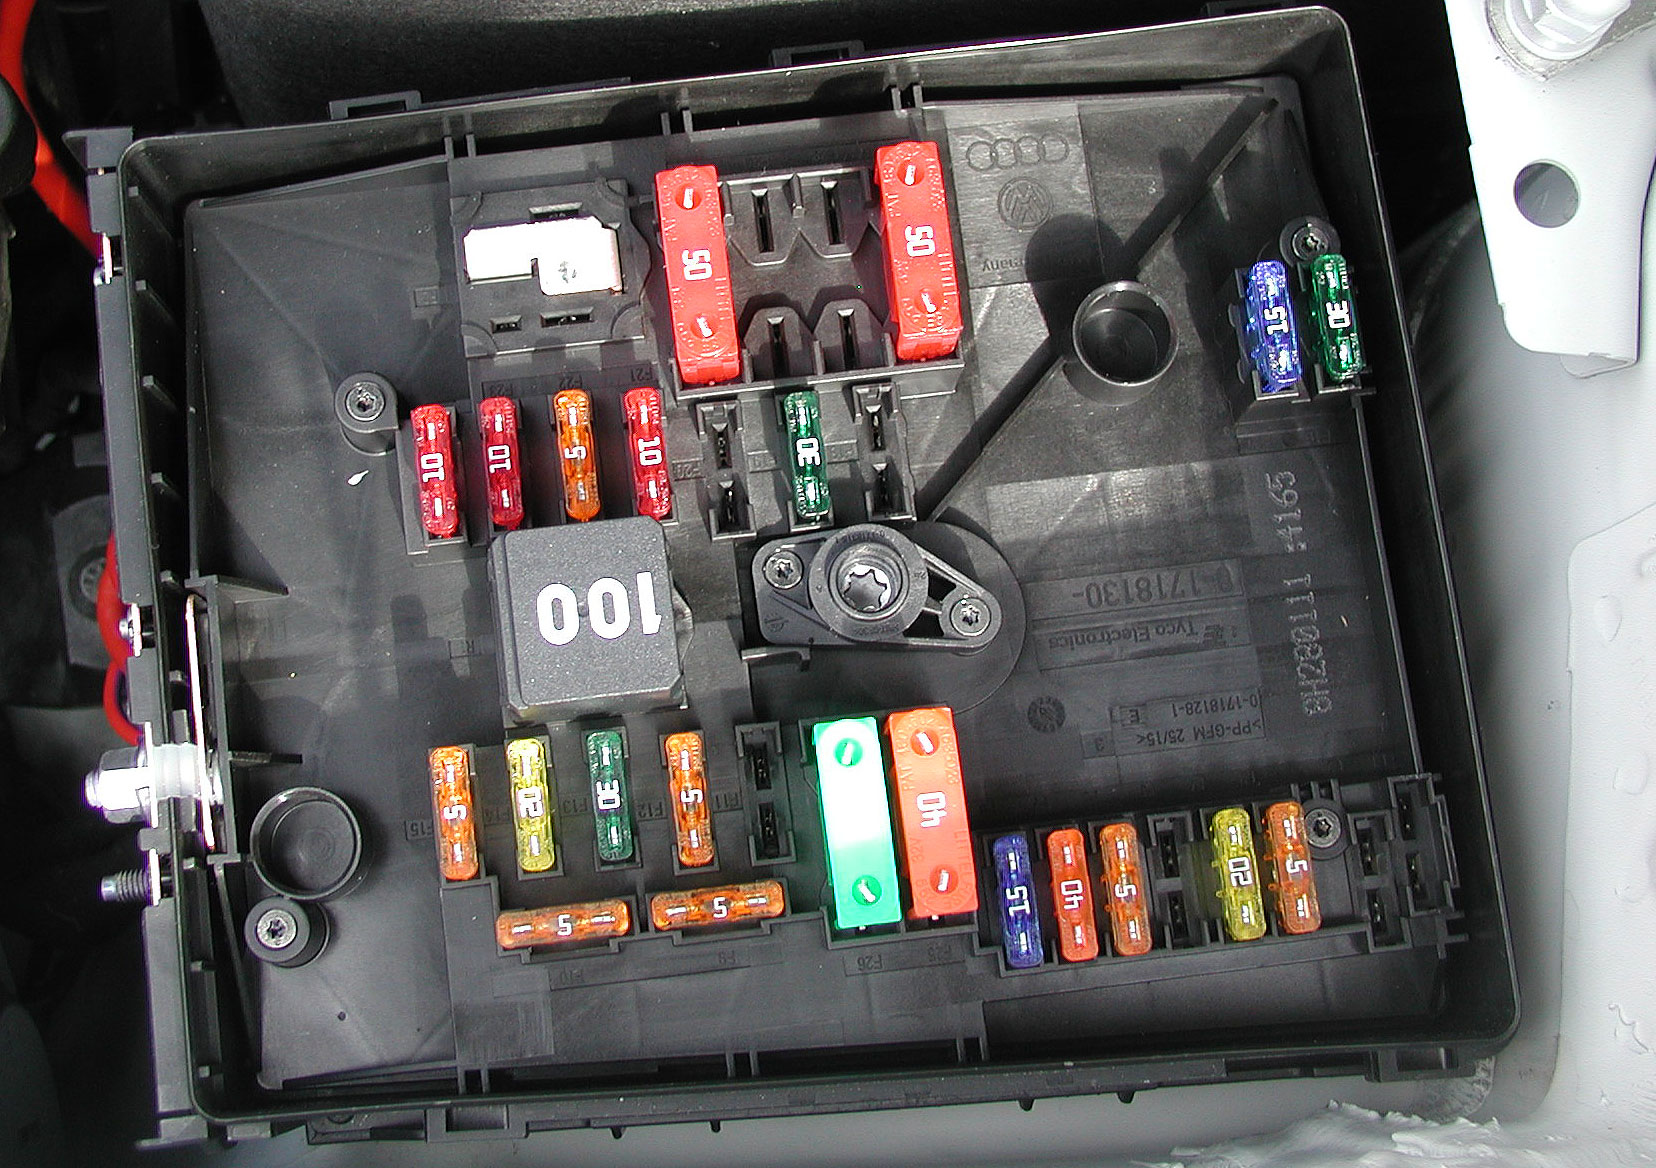 2011 golf tdi fuse box picture please tdiclub forums rh forums tdiclub com mk5 golf gt tdi fuse box location mk5 golf gt tdi fuse diagram